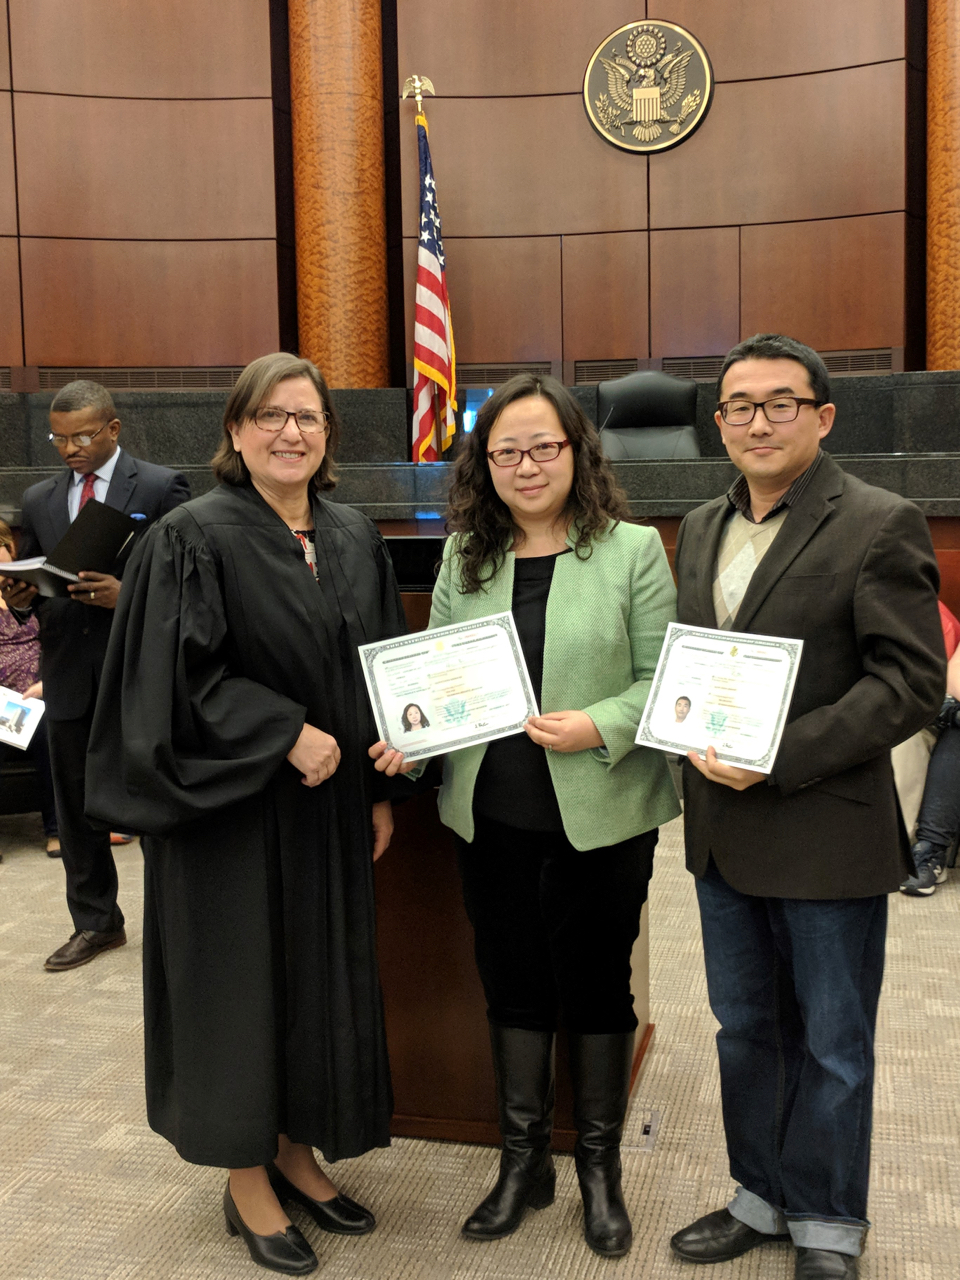 Yin Pan and her husband, Wei-Min Hung, became U.S. citizens in December 2017.